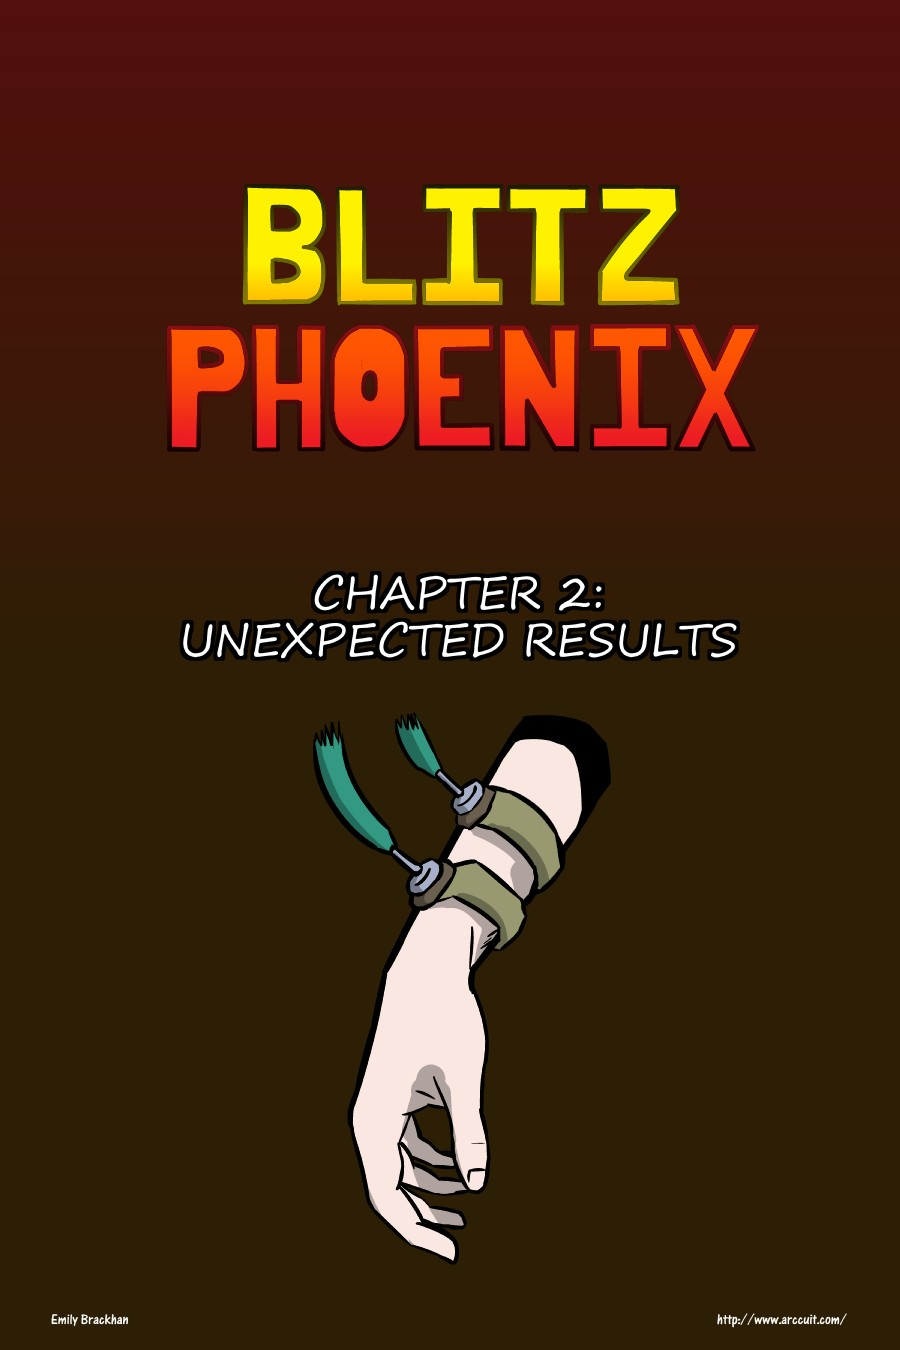 Blitz Phoenix: Chapter 2 - Unexpected Results